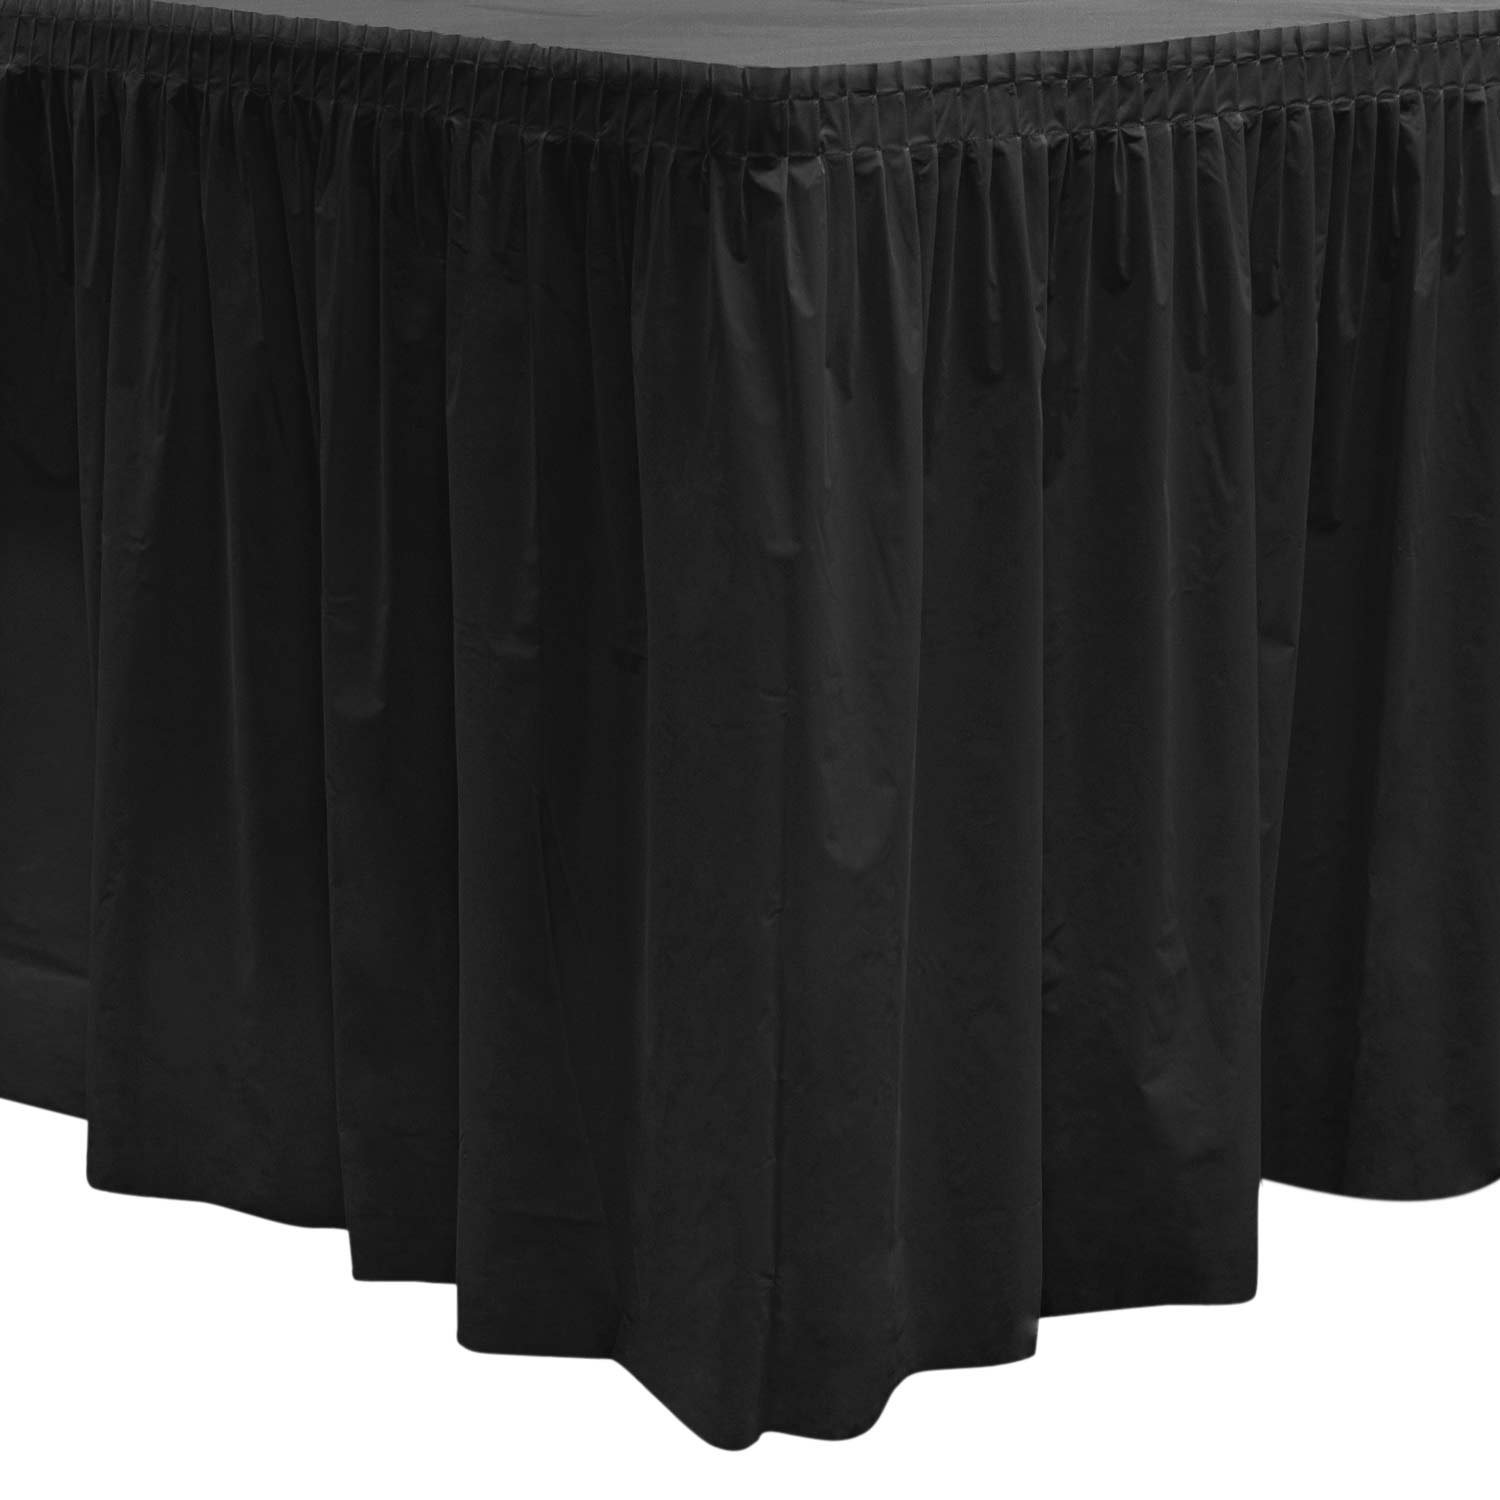 Party Essentials 2908 Plastic Table Skirt, 96'' Length x 29'' Width, Black (Case of 6)